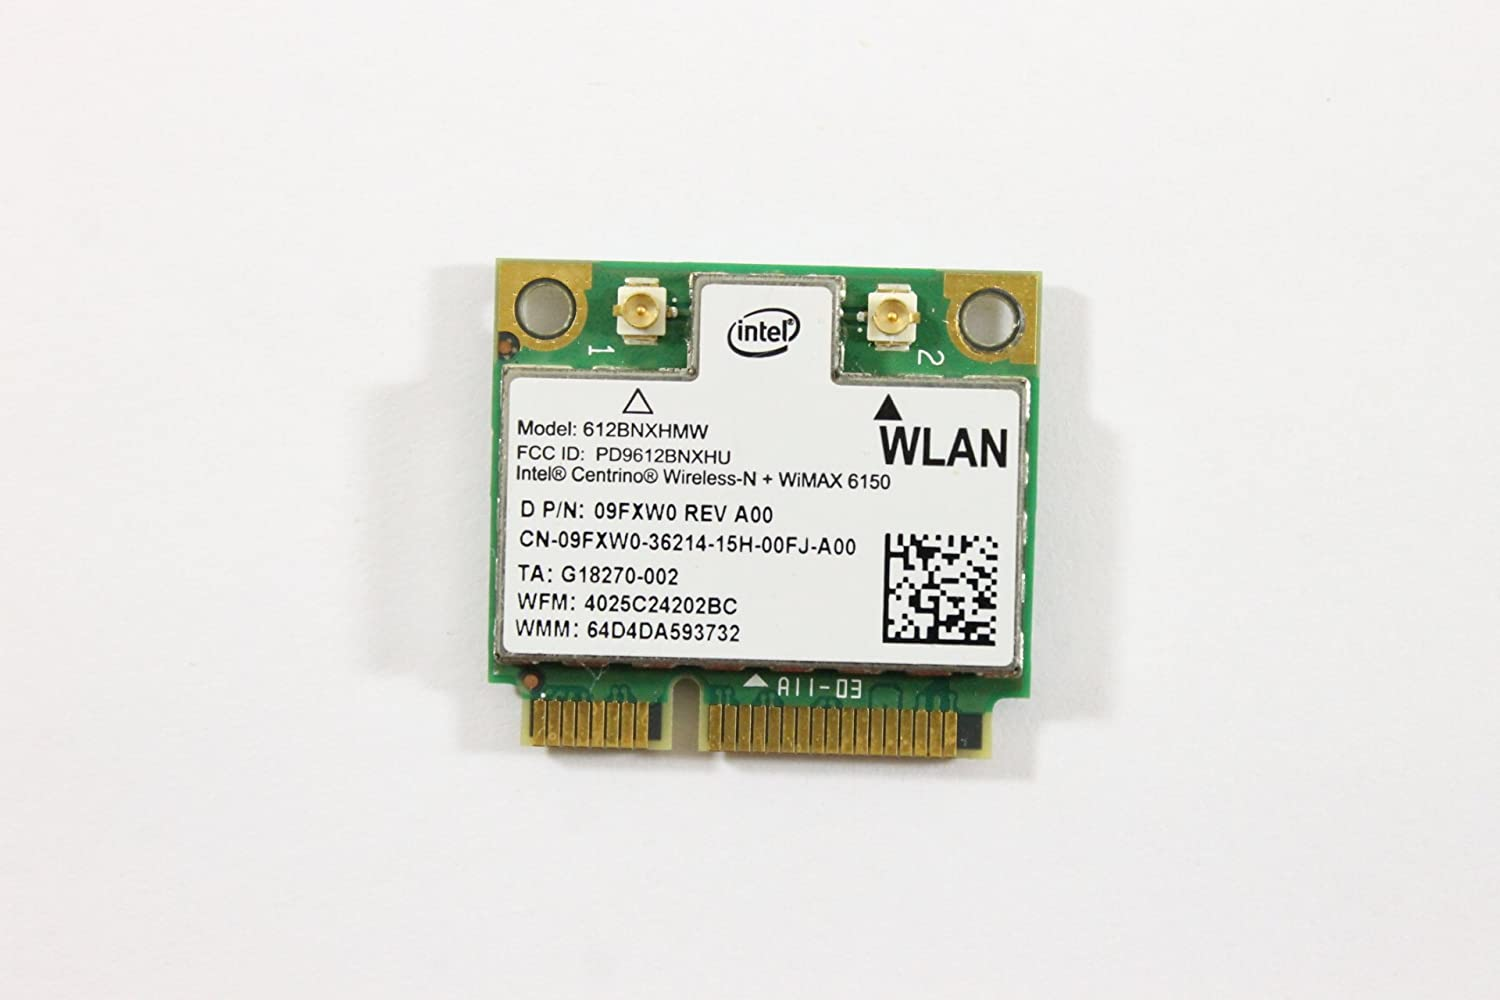 Dell Mini PCI Express Half Height 9FXW0 WLAN WiFi 802.11n Wireless Card Inspiron N4030